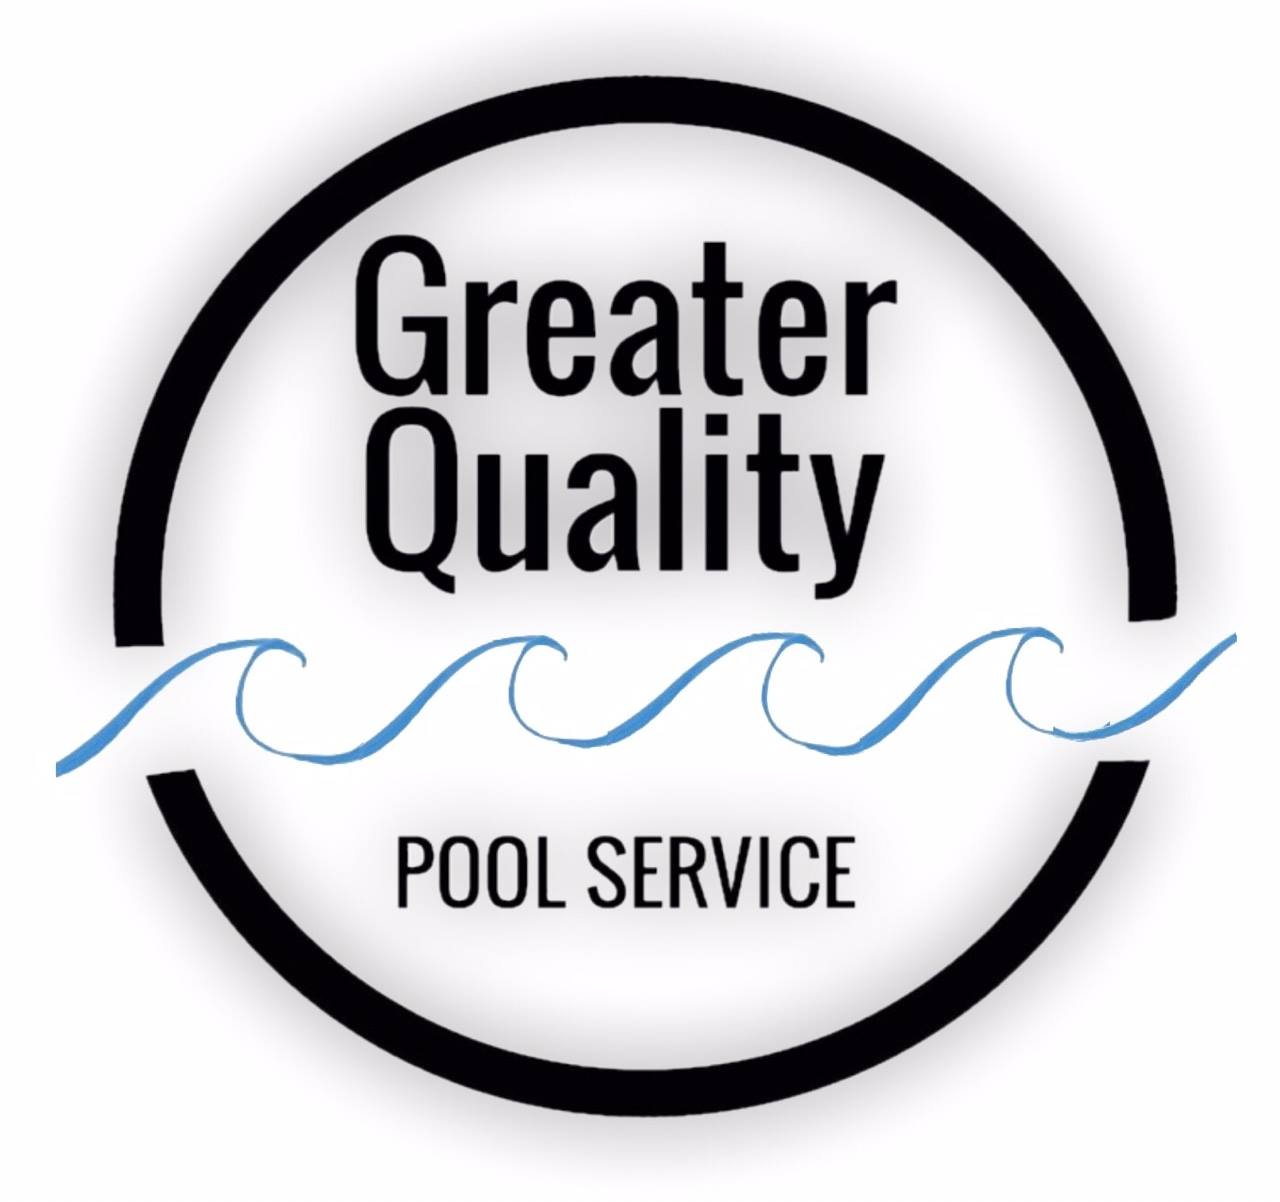 Greater Quality Pool